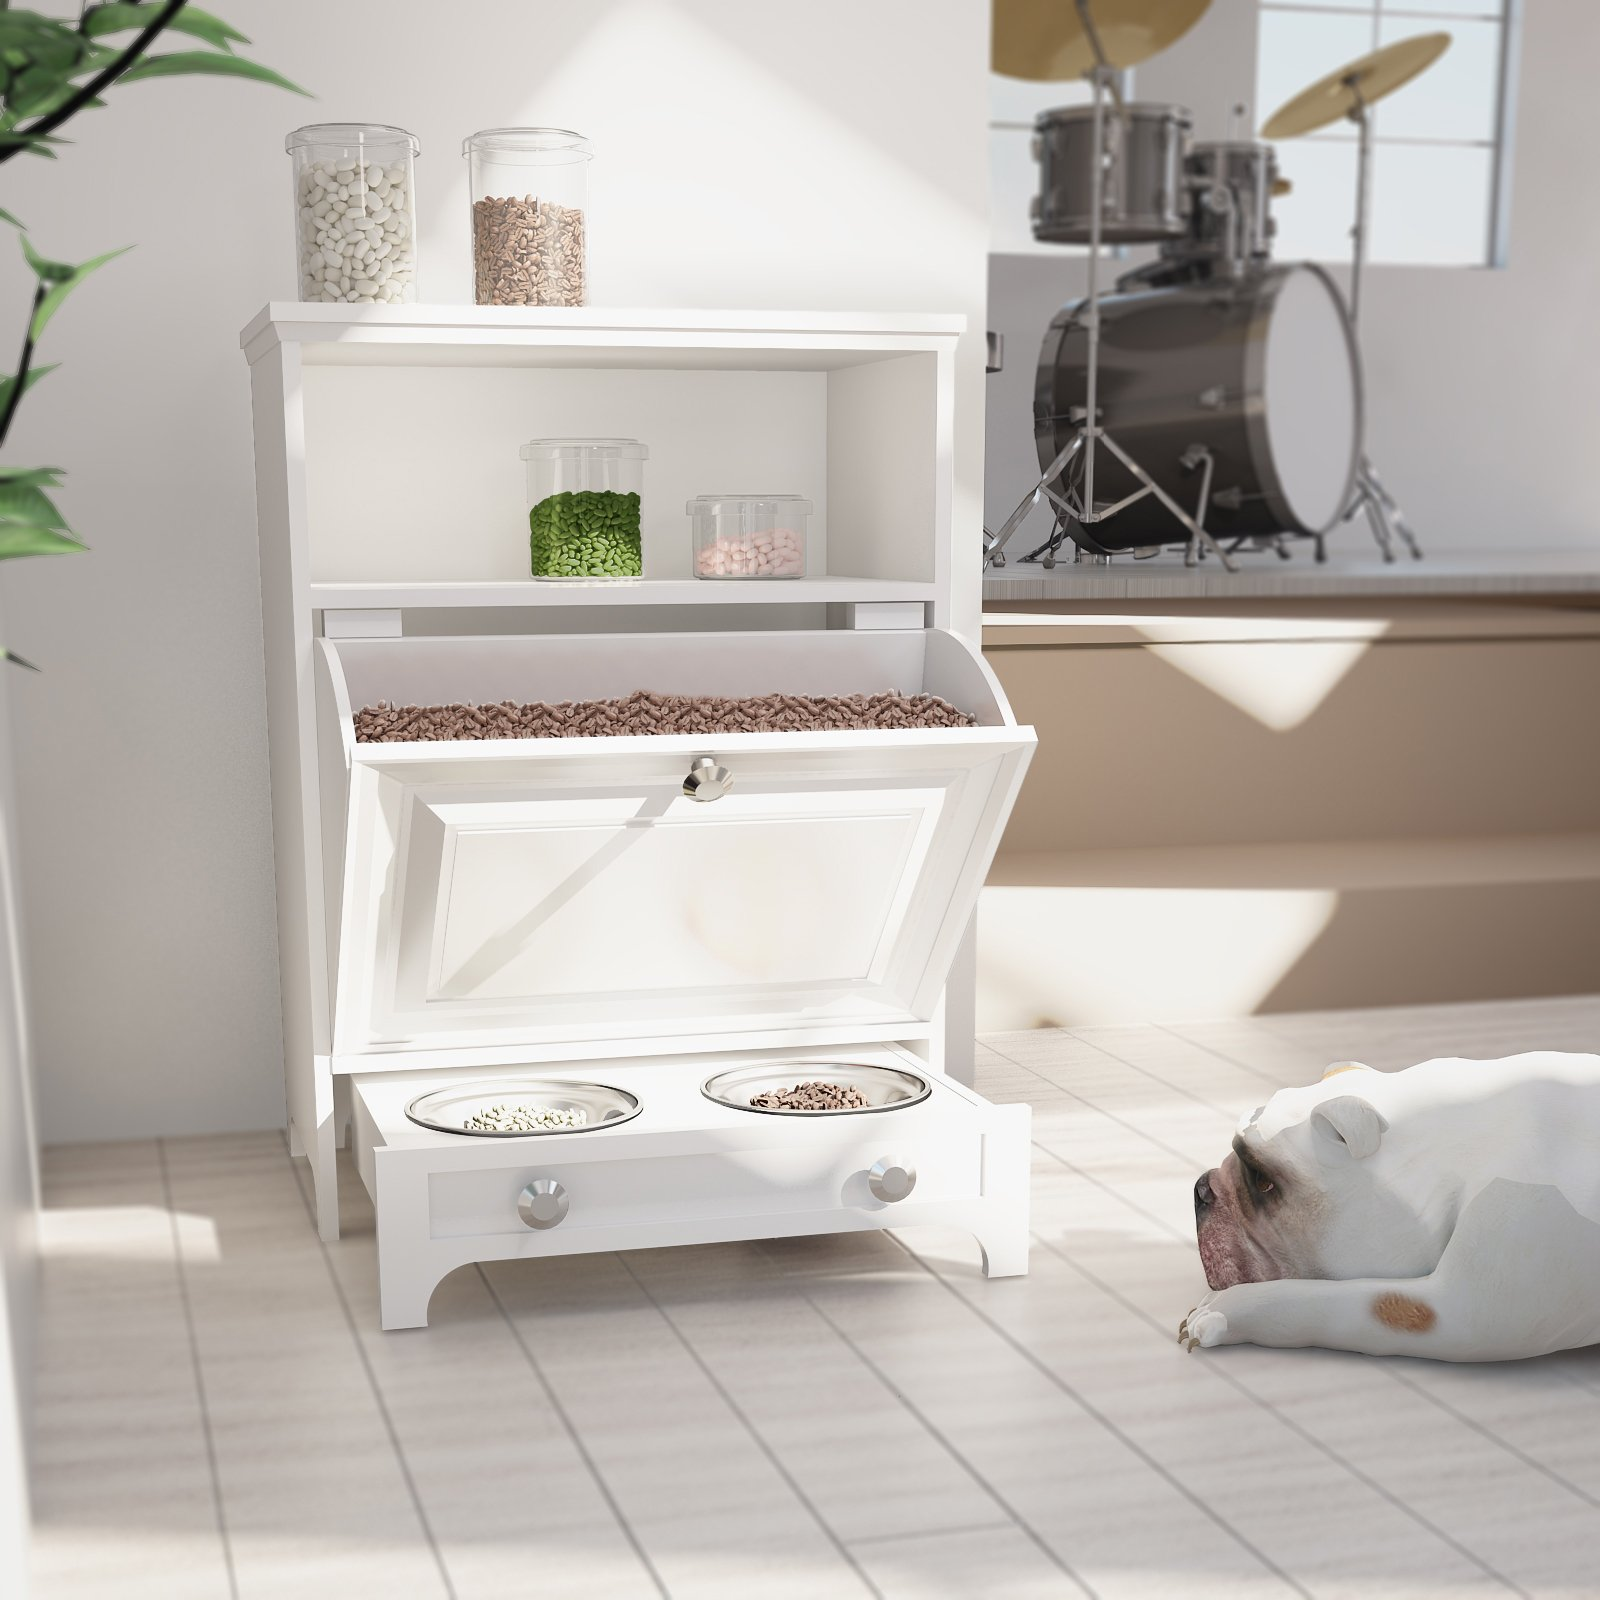 Roomfitters White Pet Feeder Station with Double Pull Out Dog Bowl,Pet Food Cabinet,Pet Toy Storage Organizer